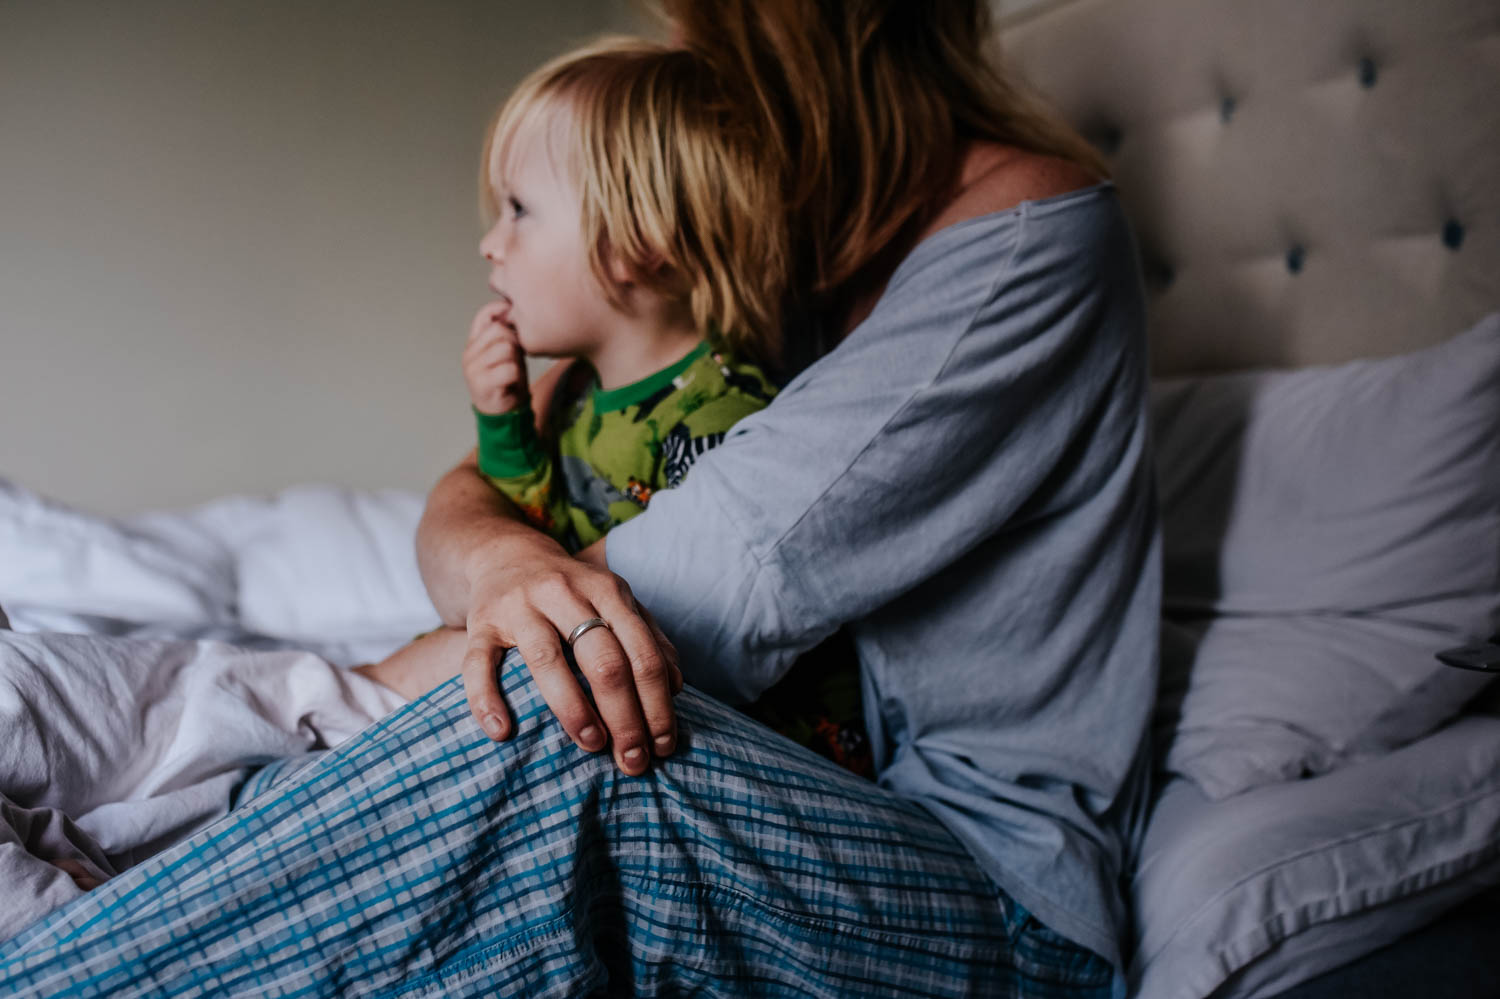 A mother sits in bed with her son on her lap aftee they have just woken up.